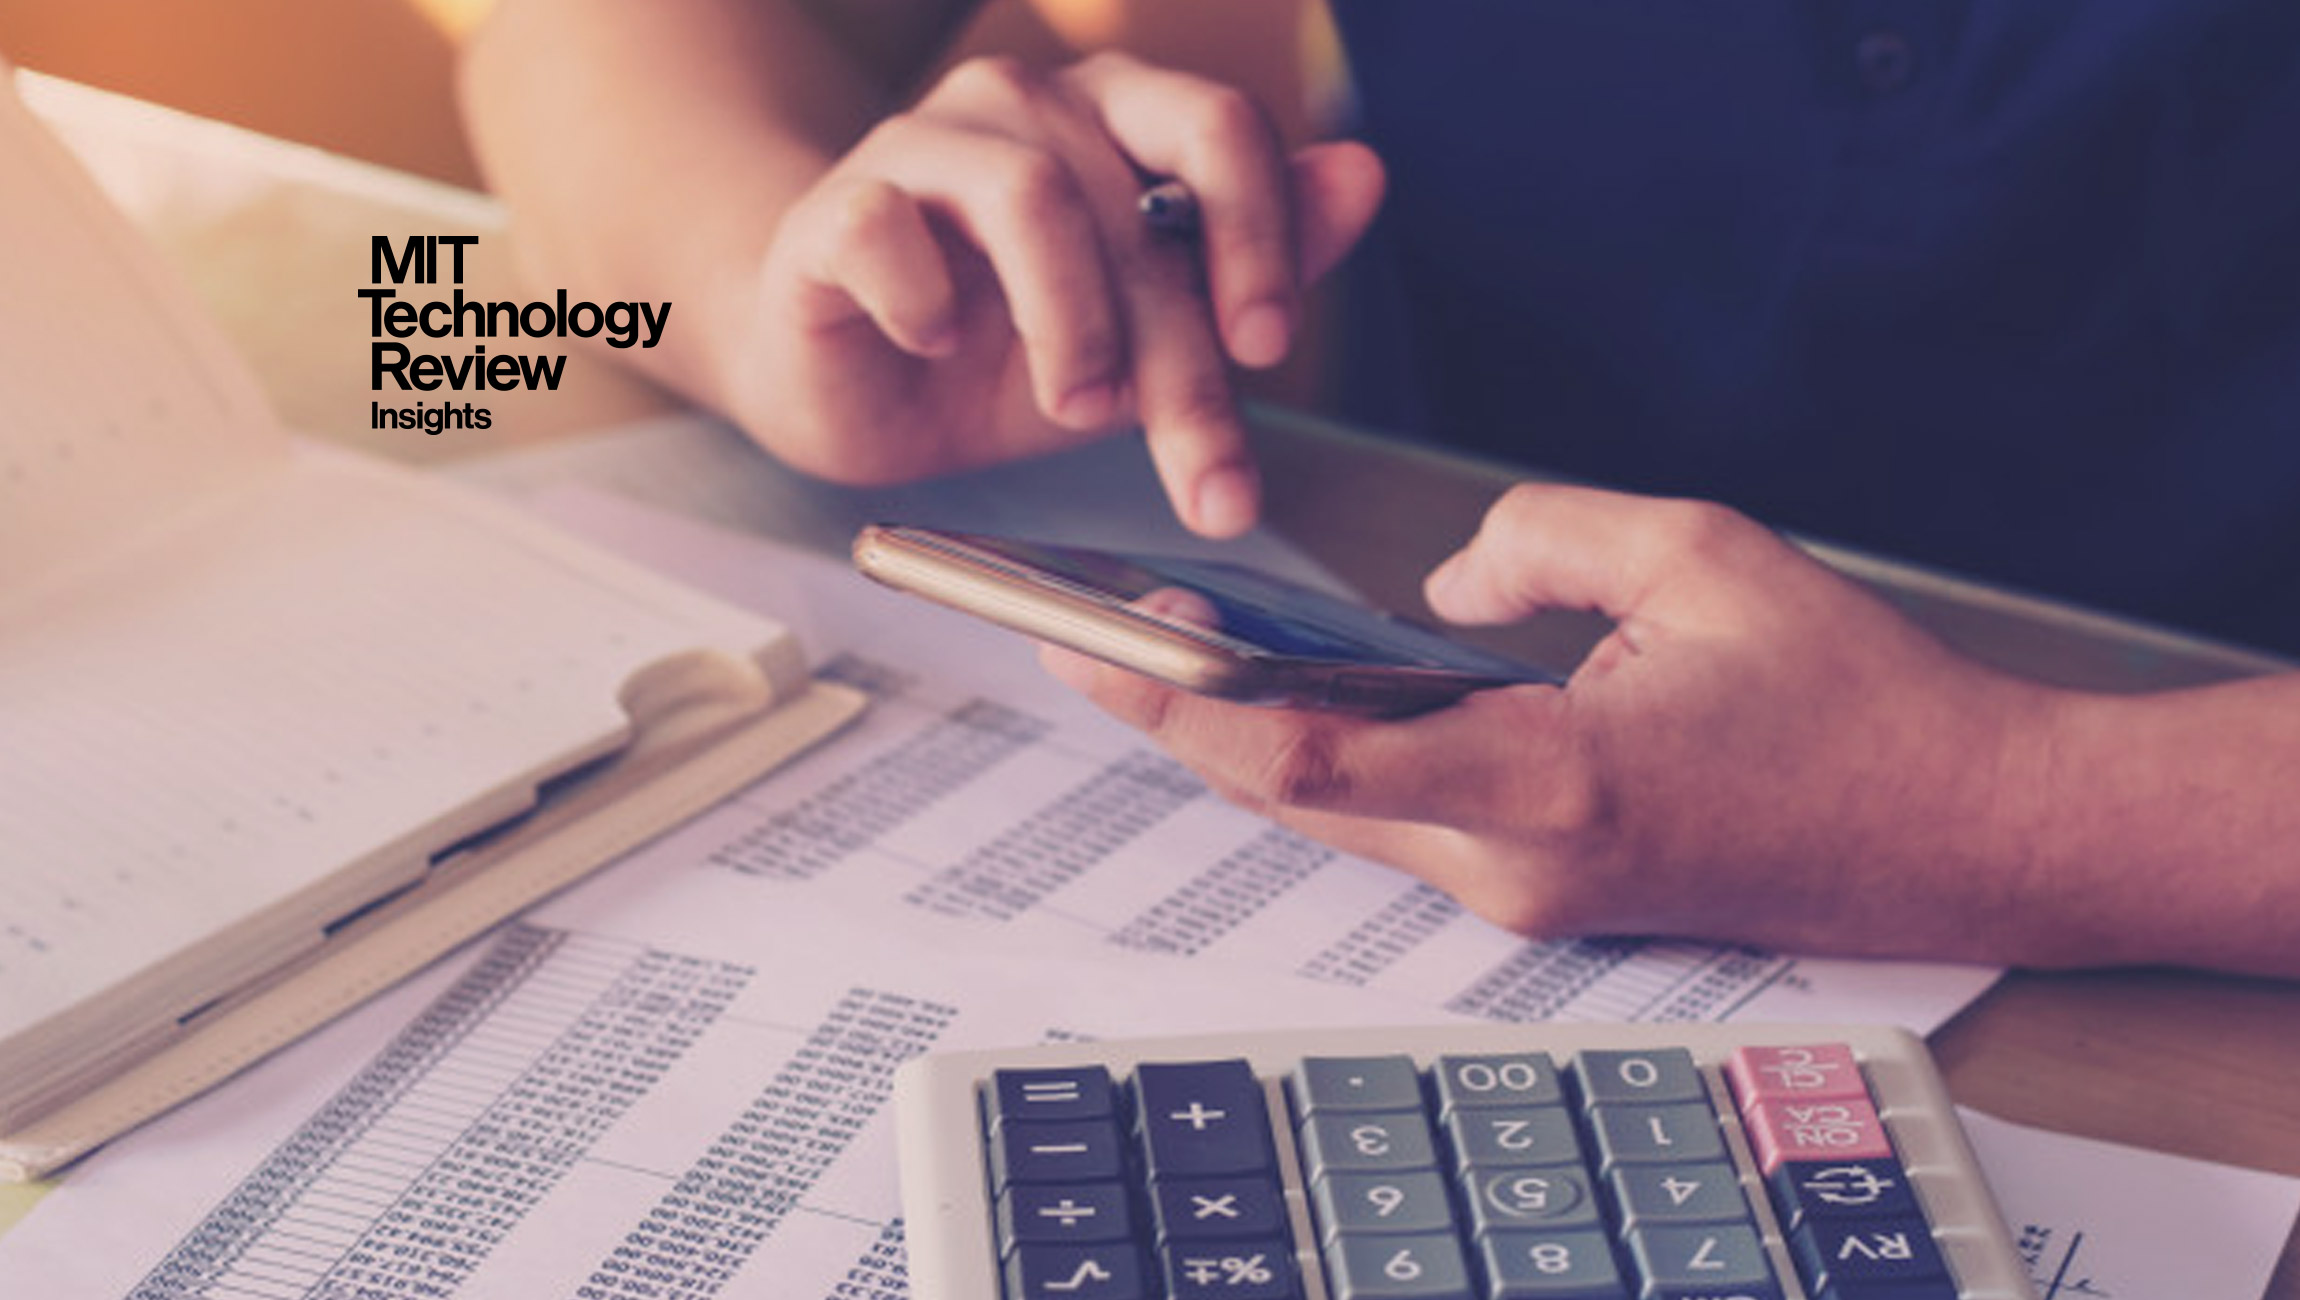 Don't Get Left Behind: The Business Risk And Cost Of Technology Obsolescence